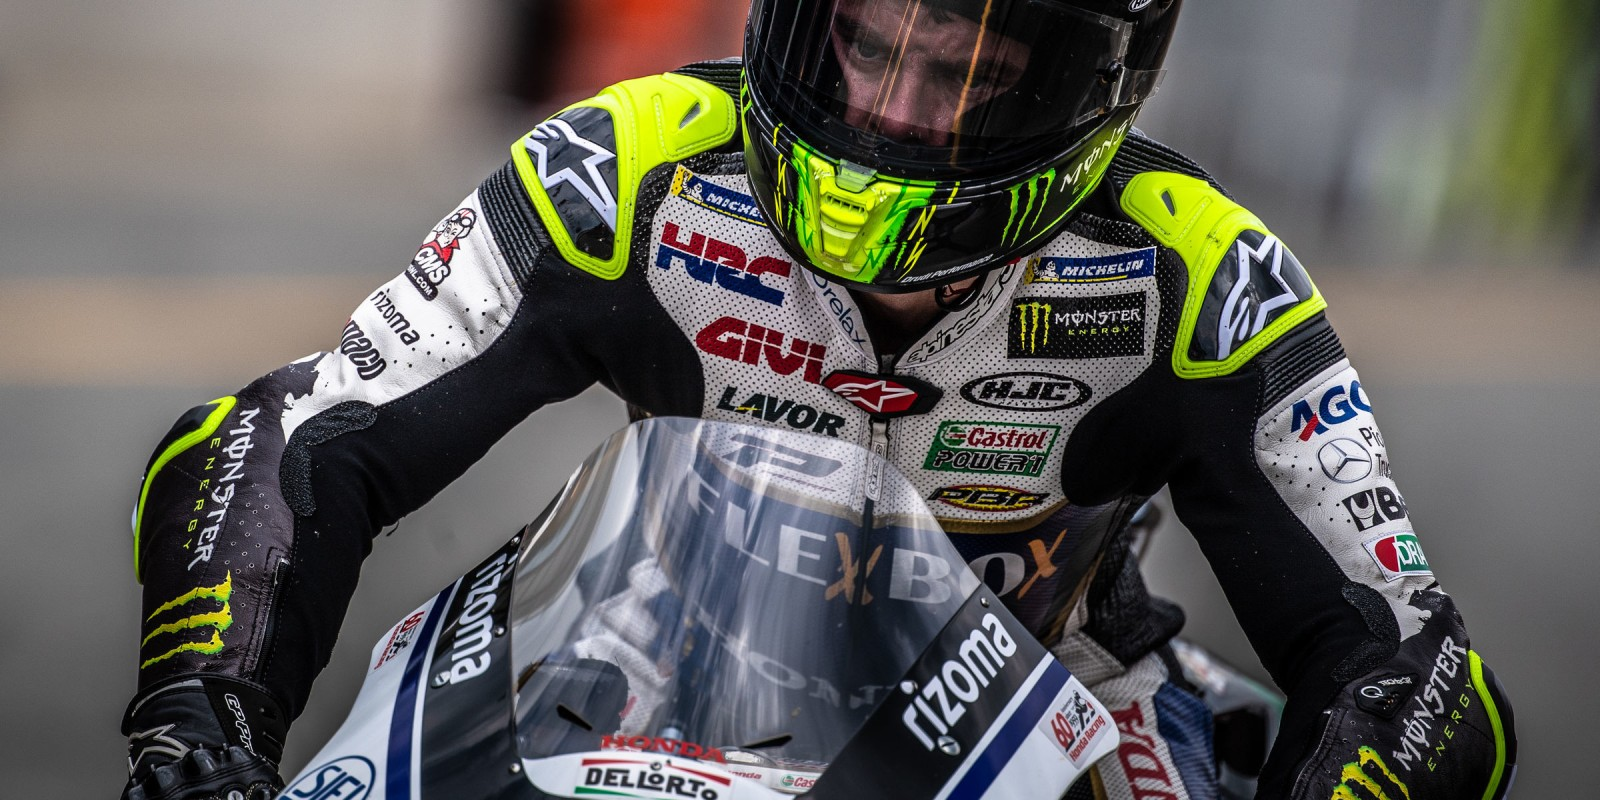 Practice rounds at MotoGP Brno 2019